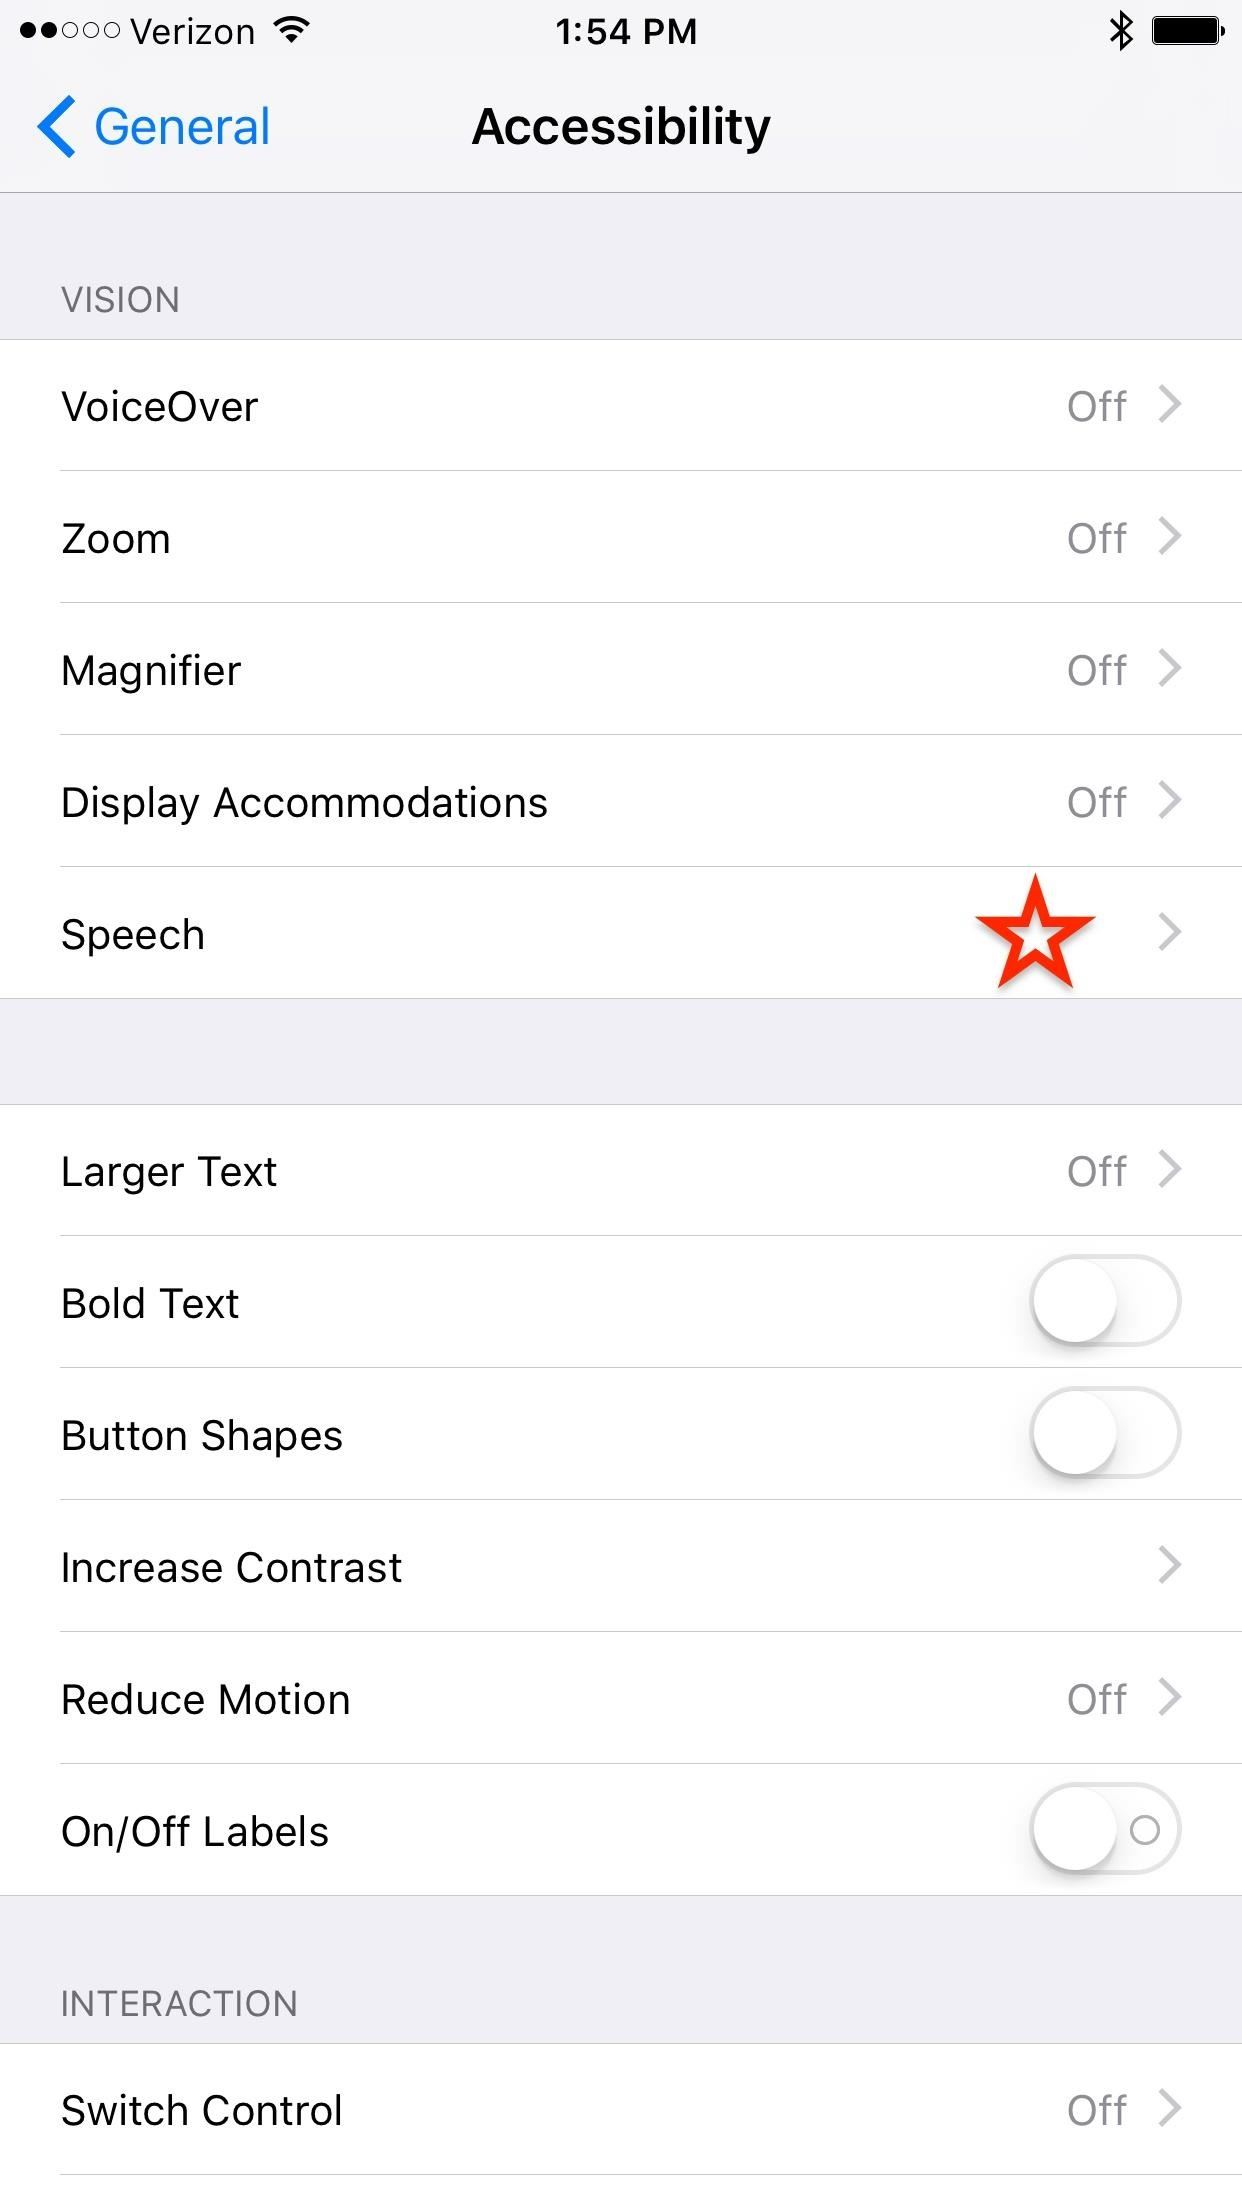 This Hidden Feature Makes Your iPhone Read Books & Articles Aloud